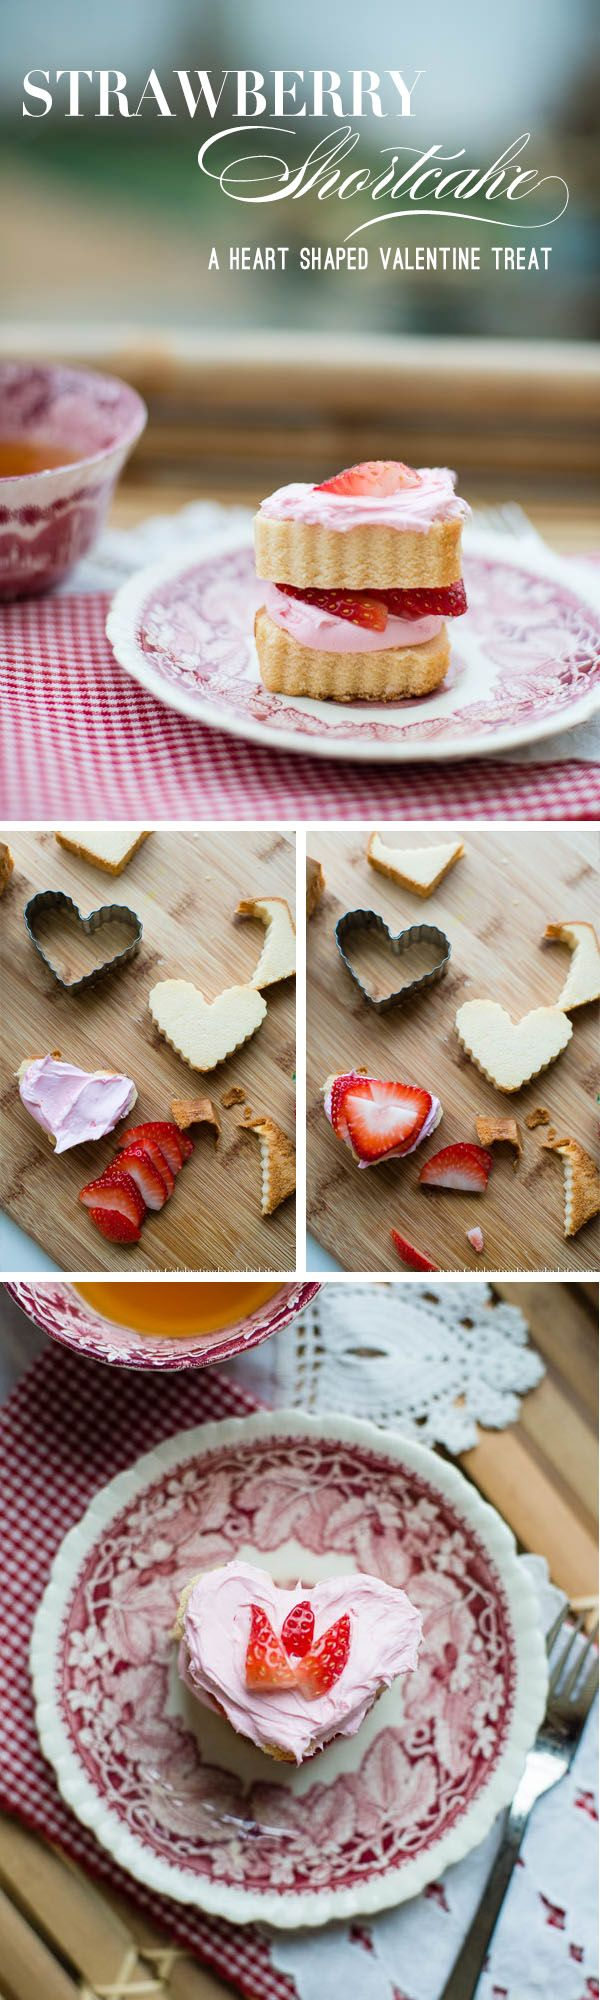 This easy no bake, heart-shaped Strawberry Shortcake recipe comes together in less than 10 minutes! I love a delicious pound cake Valentine dessert, especially when it's this cute! | Celebrating Everyday Life with Jennifer Carroll